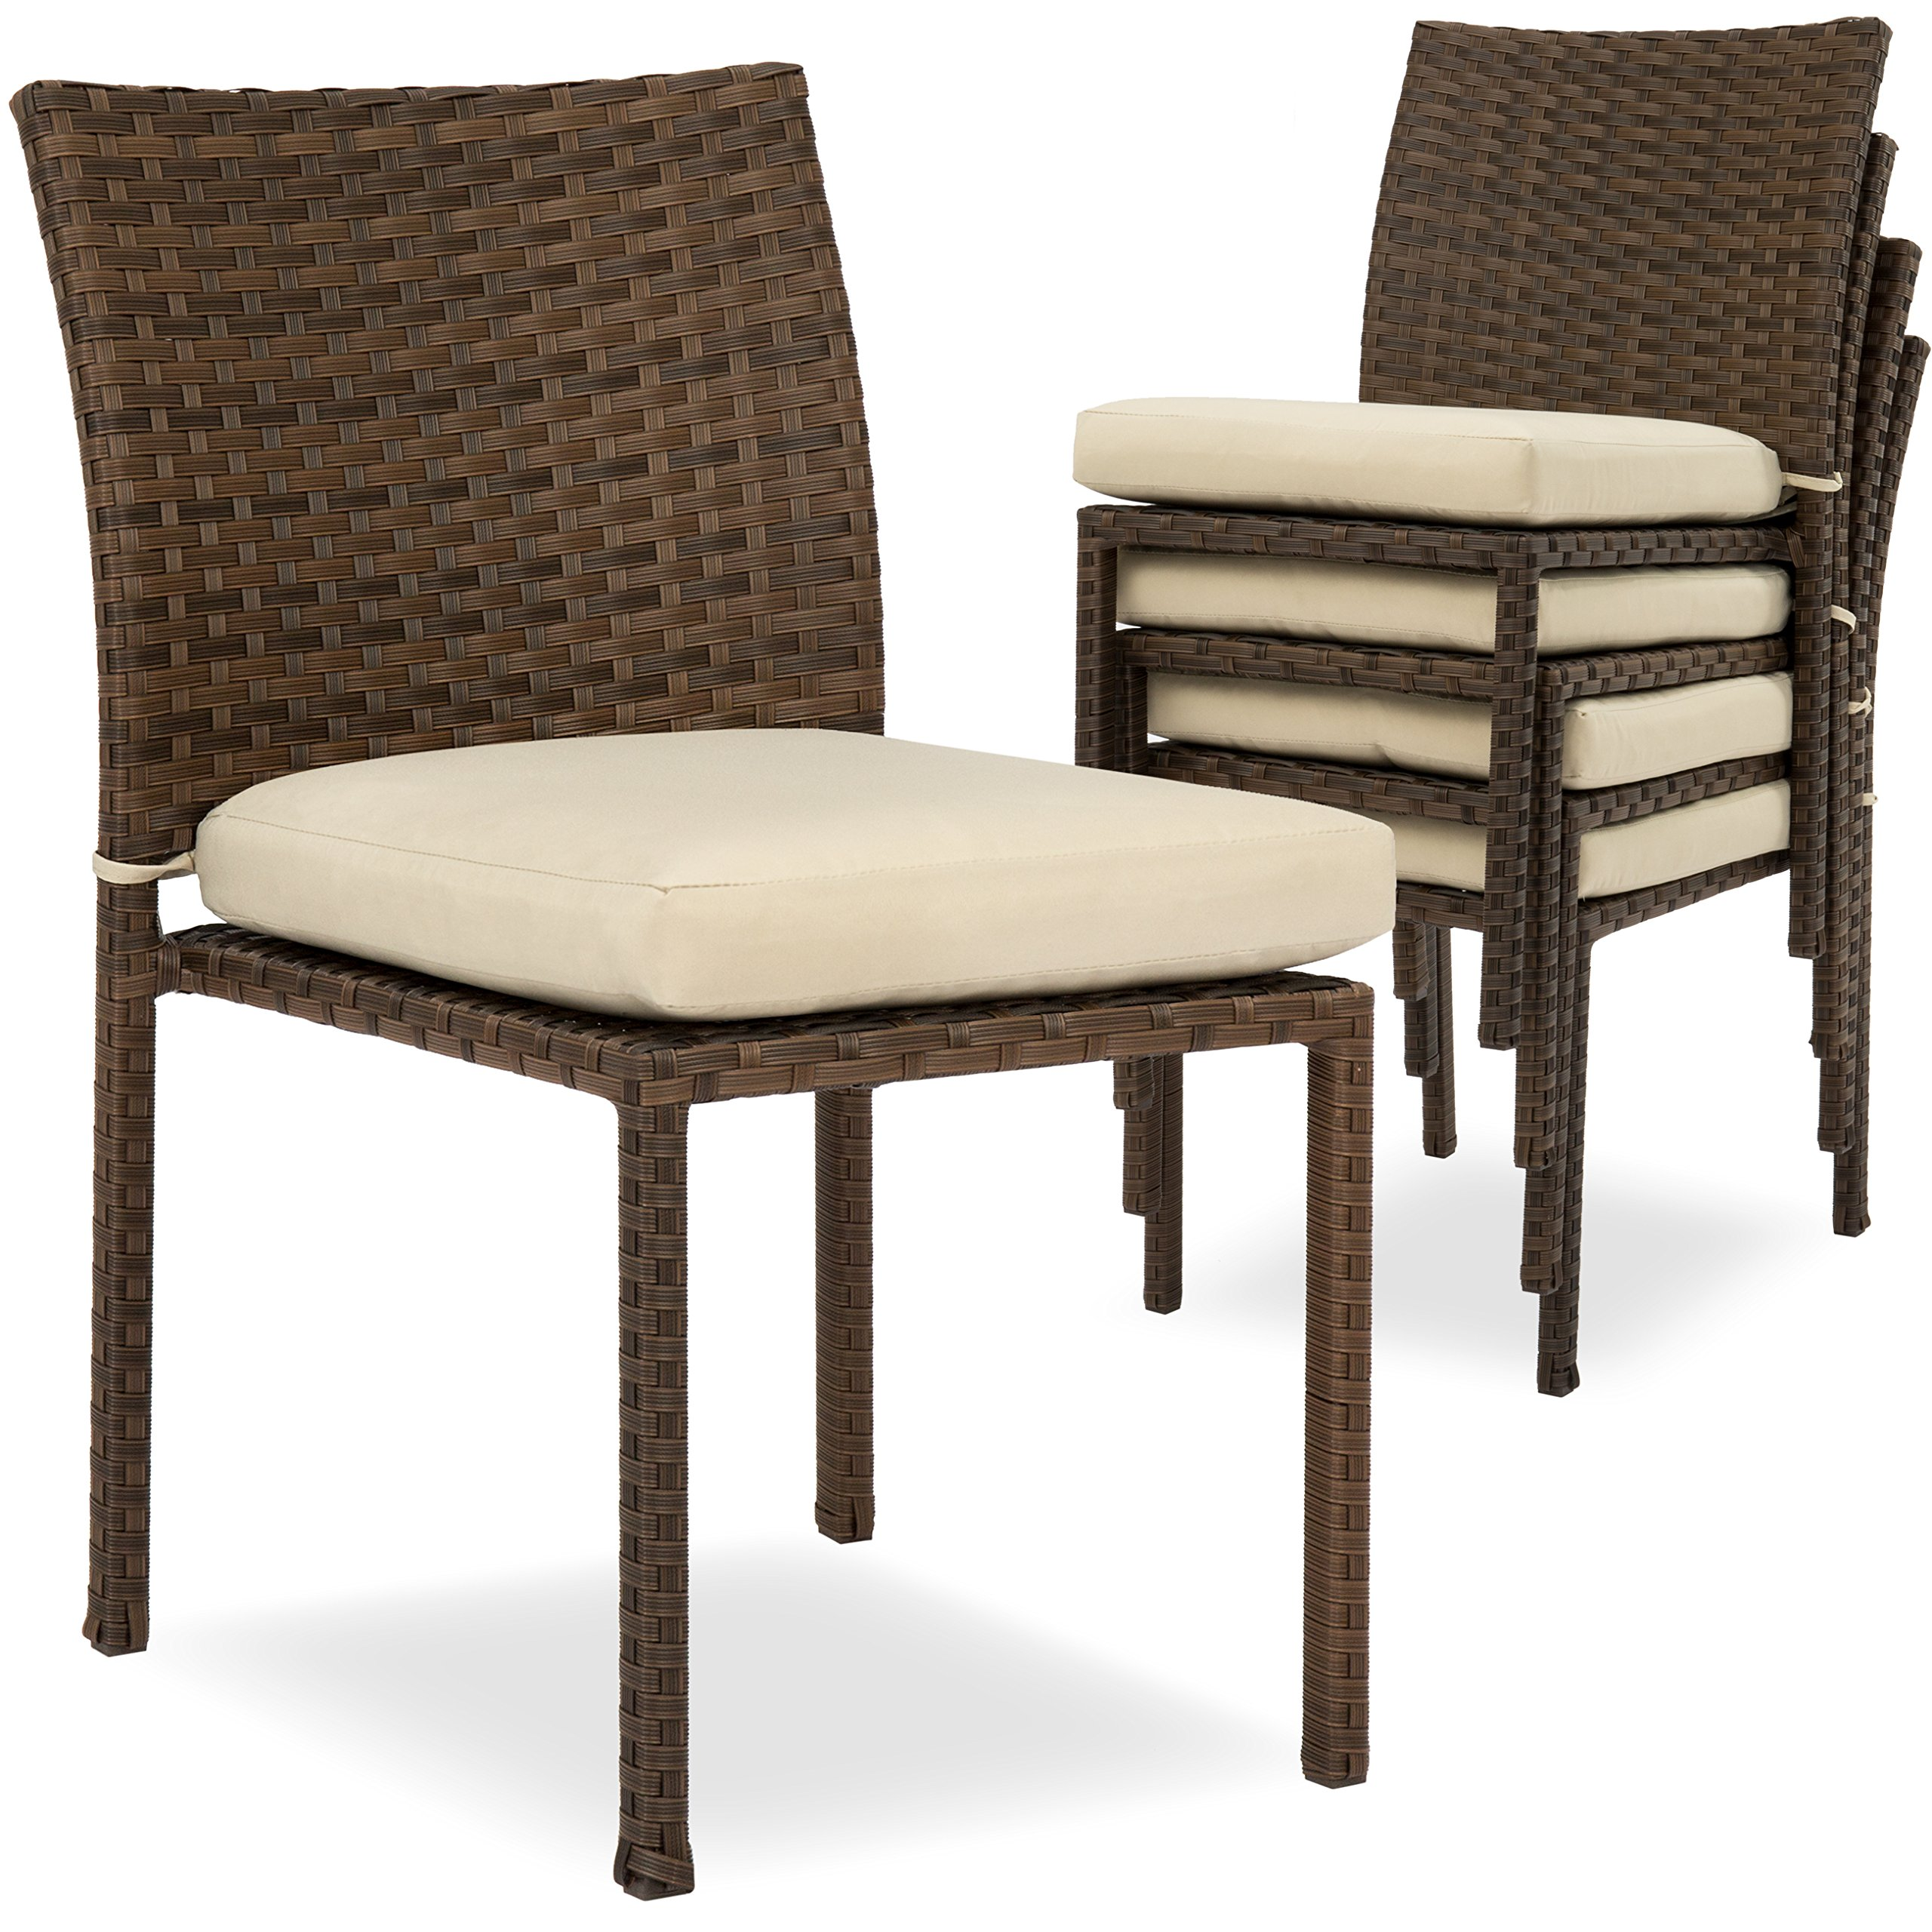 Best Choice Products Set of 4 Stackable Outdoor Patio Wicker Chairs w/Cushions, UV-Resistant Finish - Brown